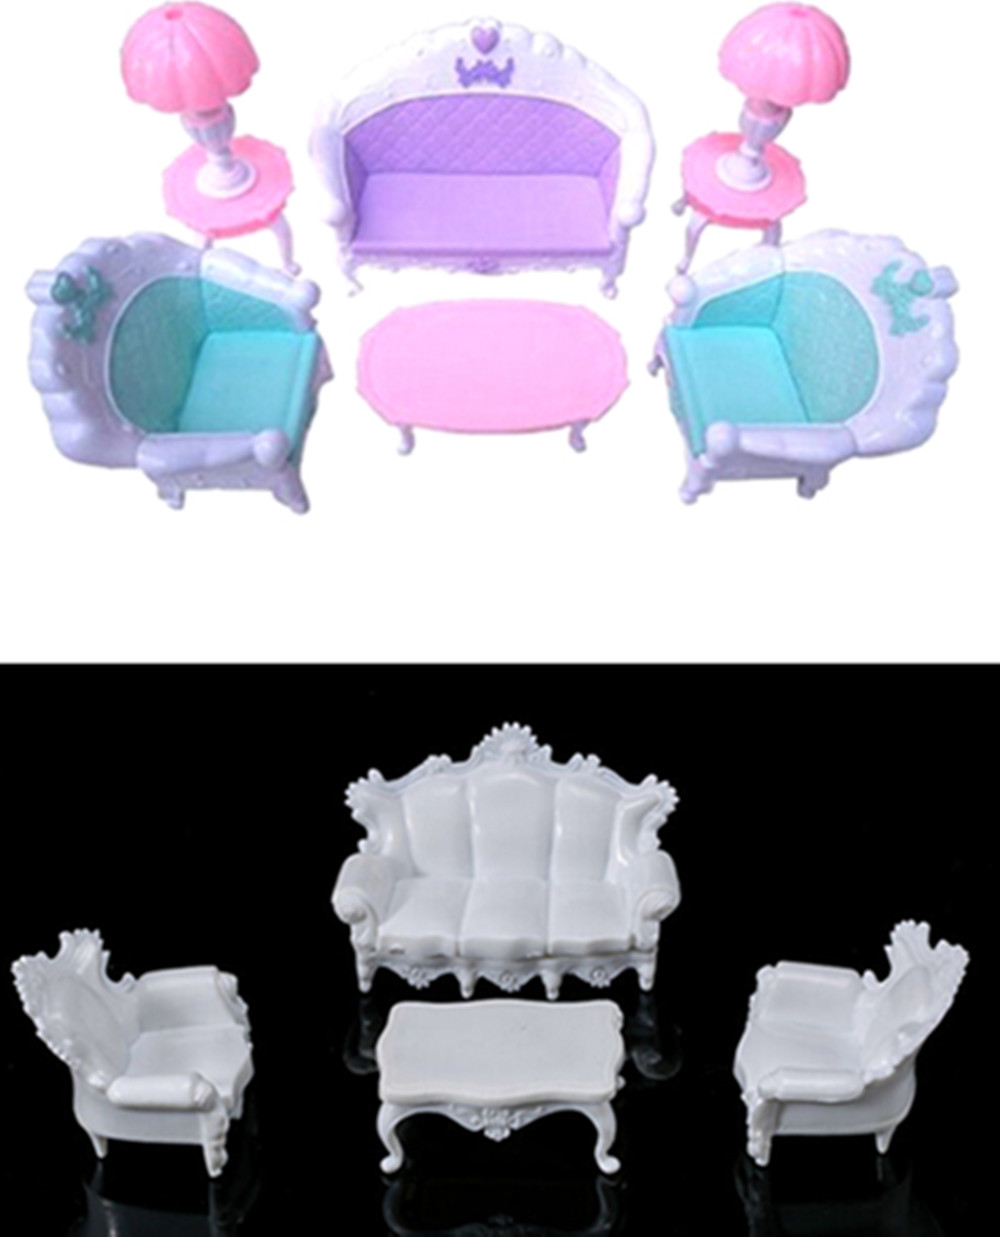 Families Furniture Toys Dollhouse Sofa Table Chair Lamp Miniature Furniture Sets Children Gift Toys Available In A Variety